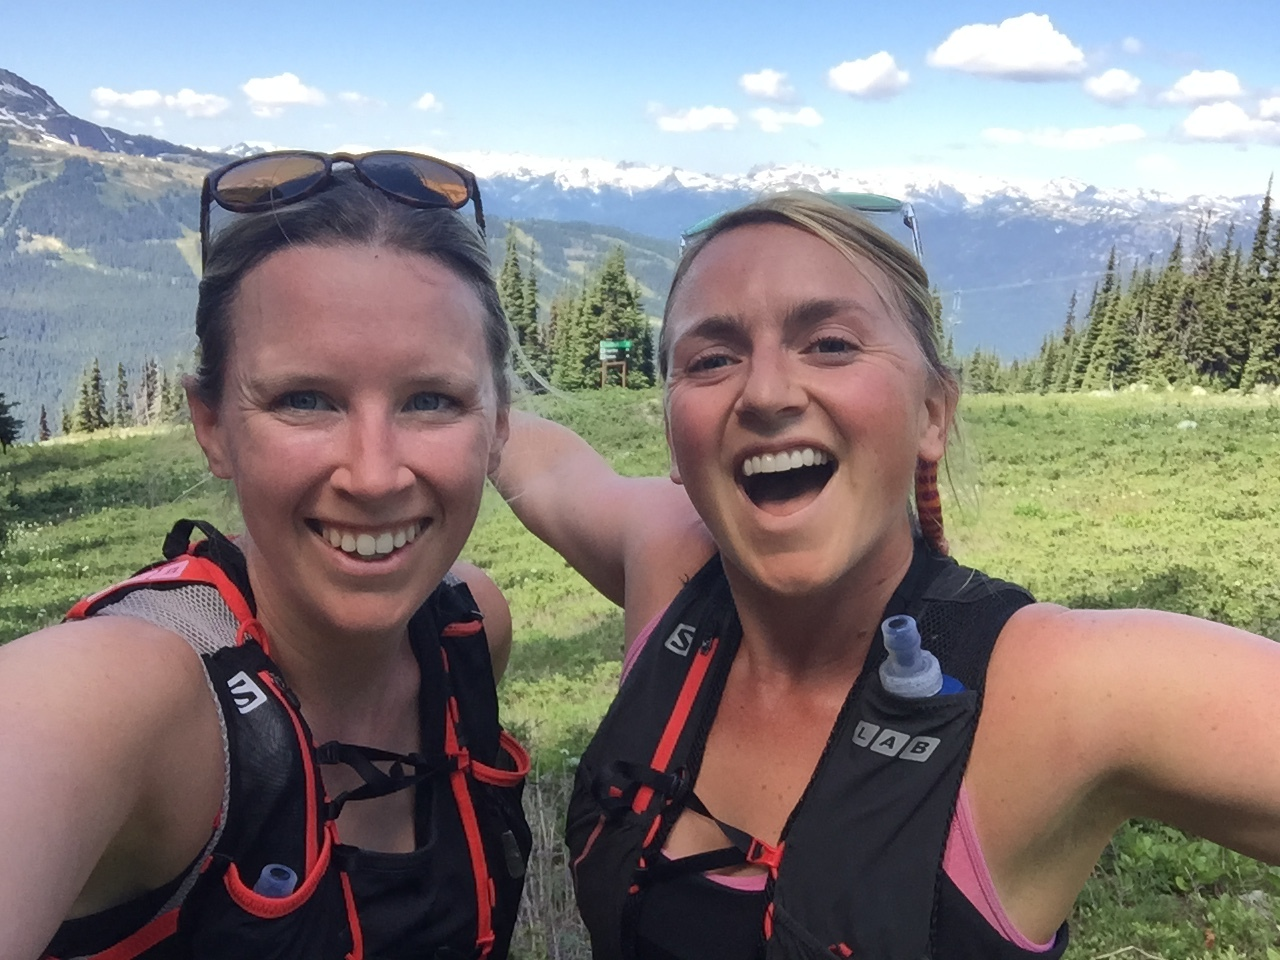 The result of harnessing good stress on a Blackcomb Mountain Trail Run with Liz